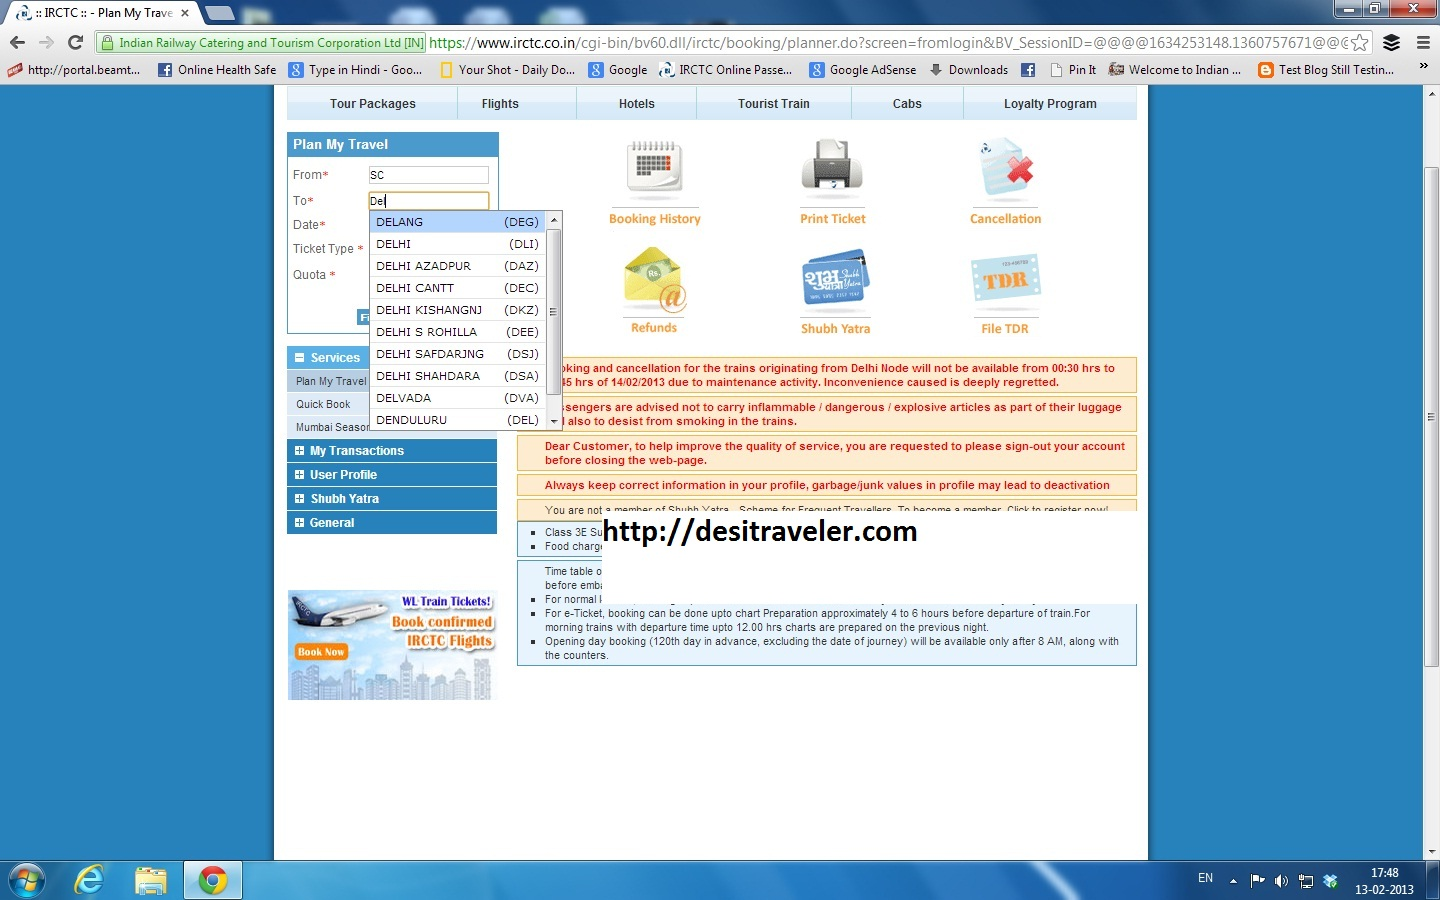 Booking Site 7 Steps To Book Tatkal Railway Ticket Online On Irctc Website